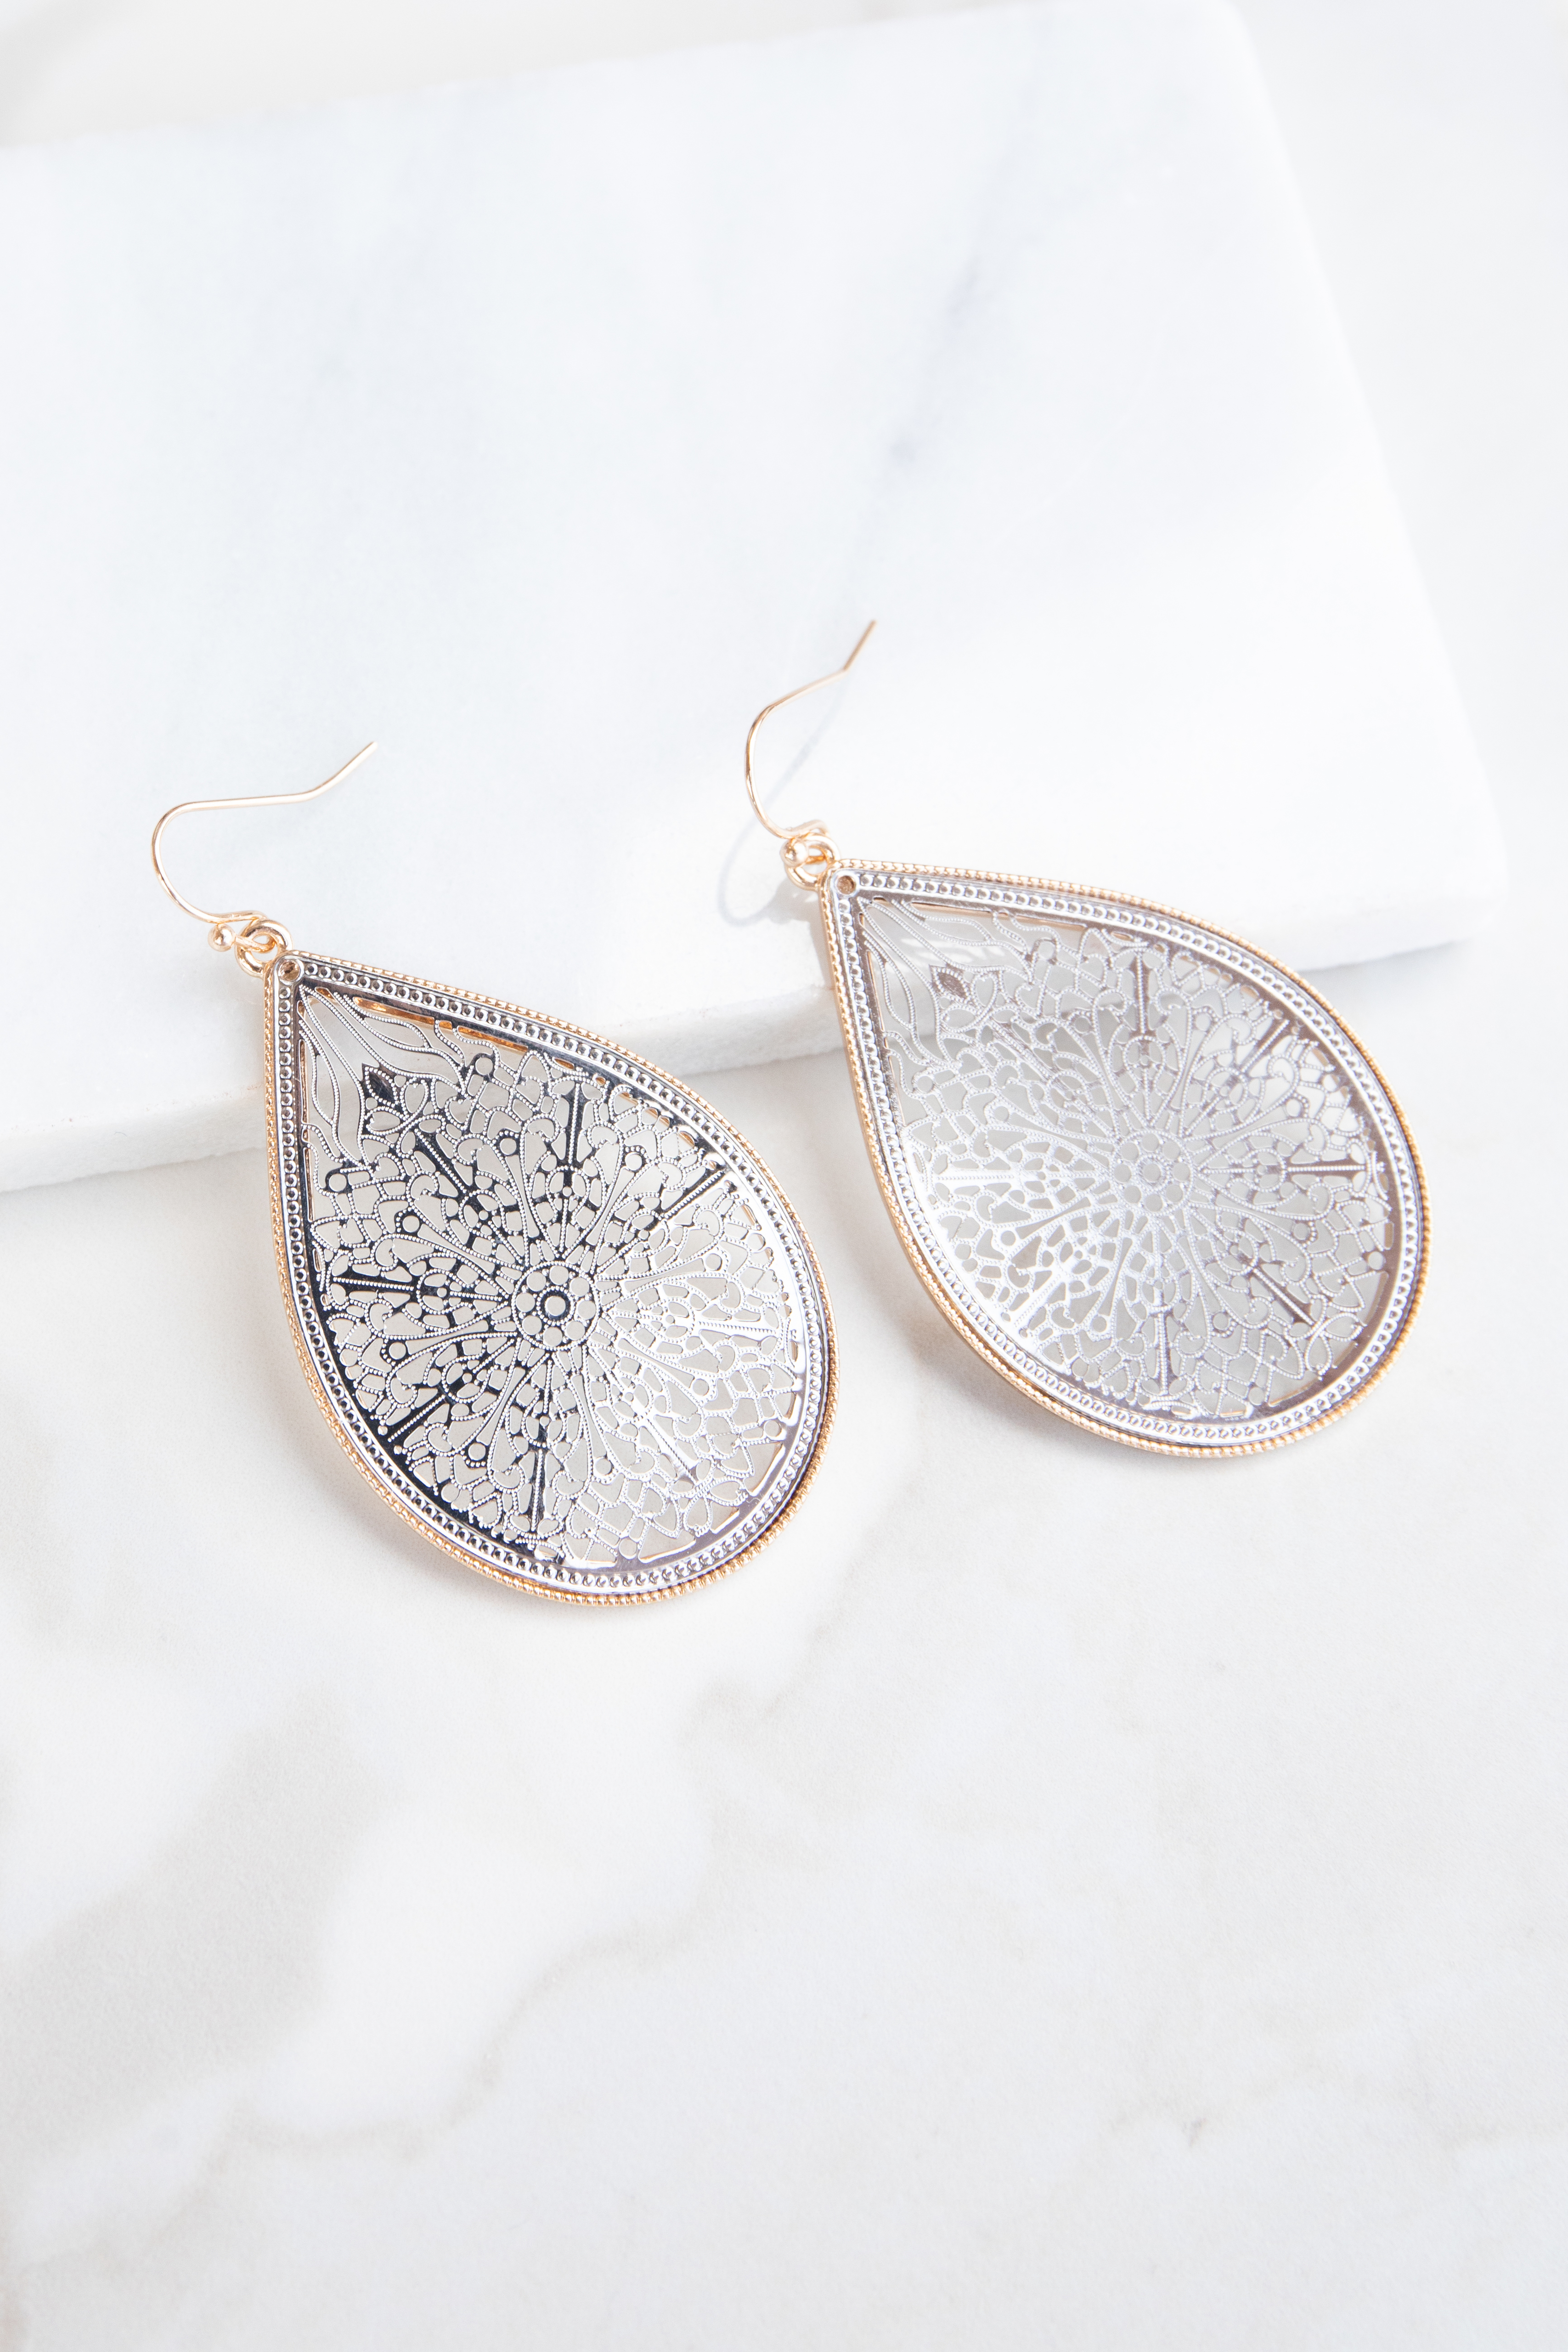 Silver Teardrop Shaped Filigree Dangle Earrings with Gold